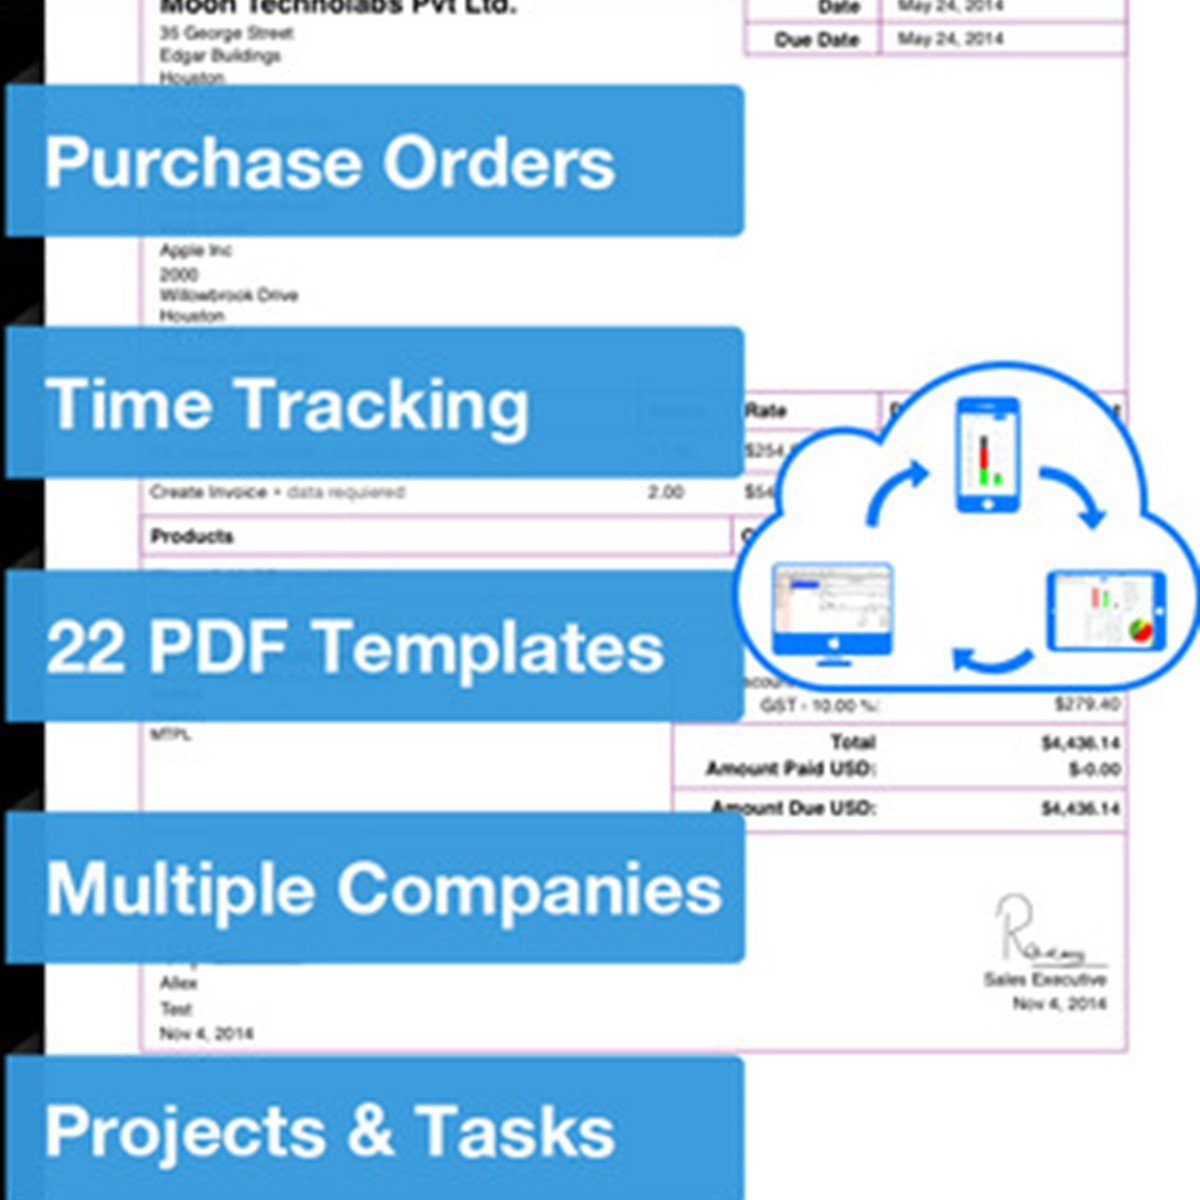 Invoice Templat Excel Moon Invoice Alternatives And Similar Software  Alternativetonet Customs Invoice Excel with Email Receipts To Concur Excel  Receipt Printer For Android Excel